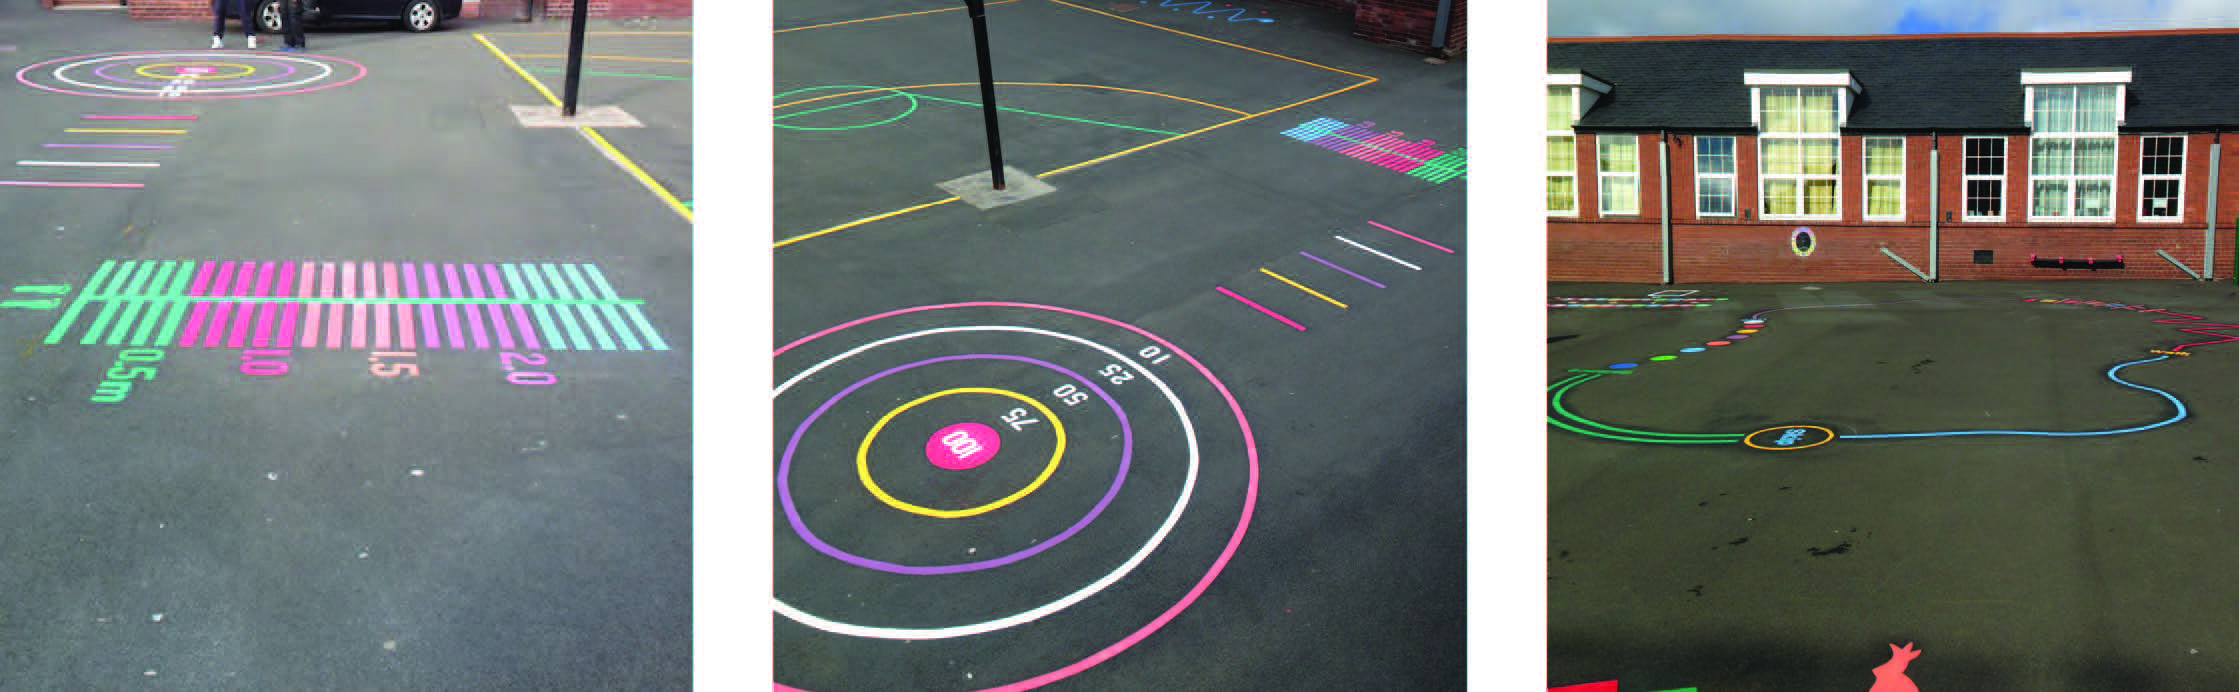 Playground Marking for Activities